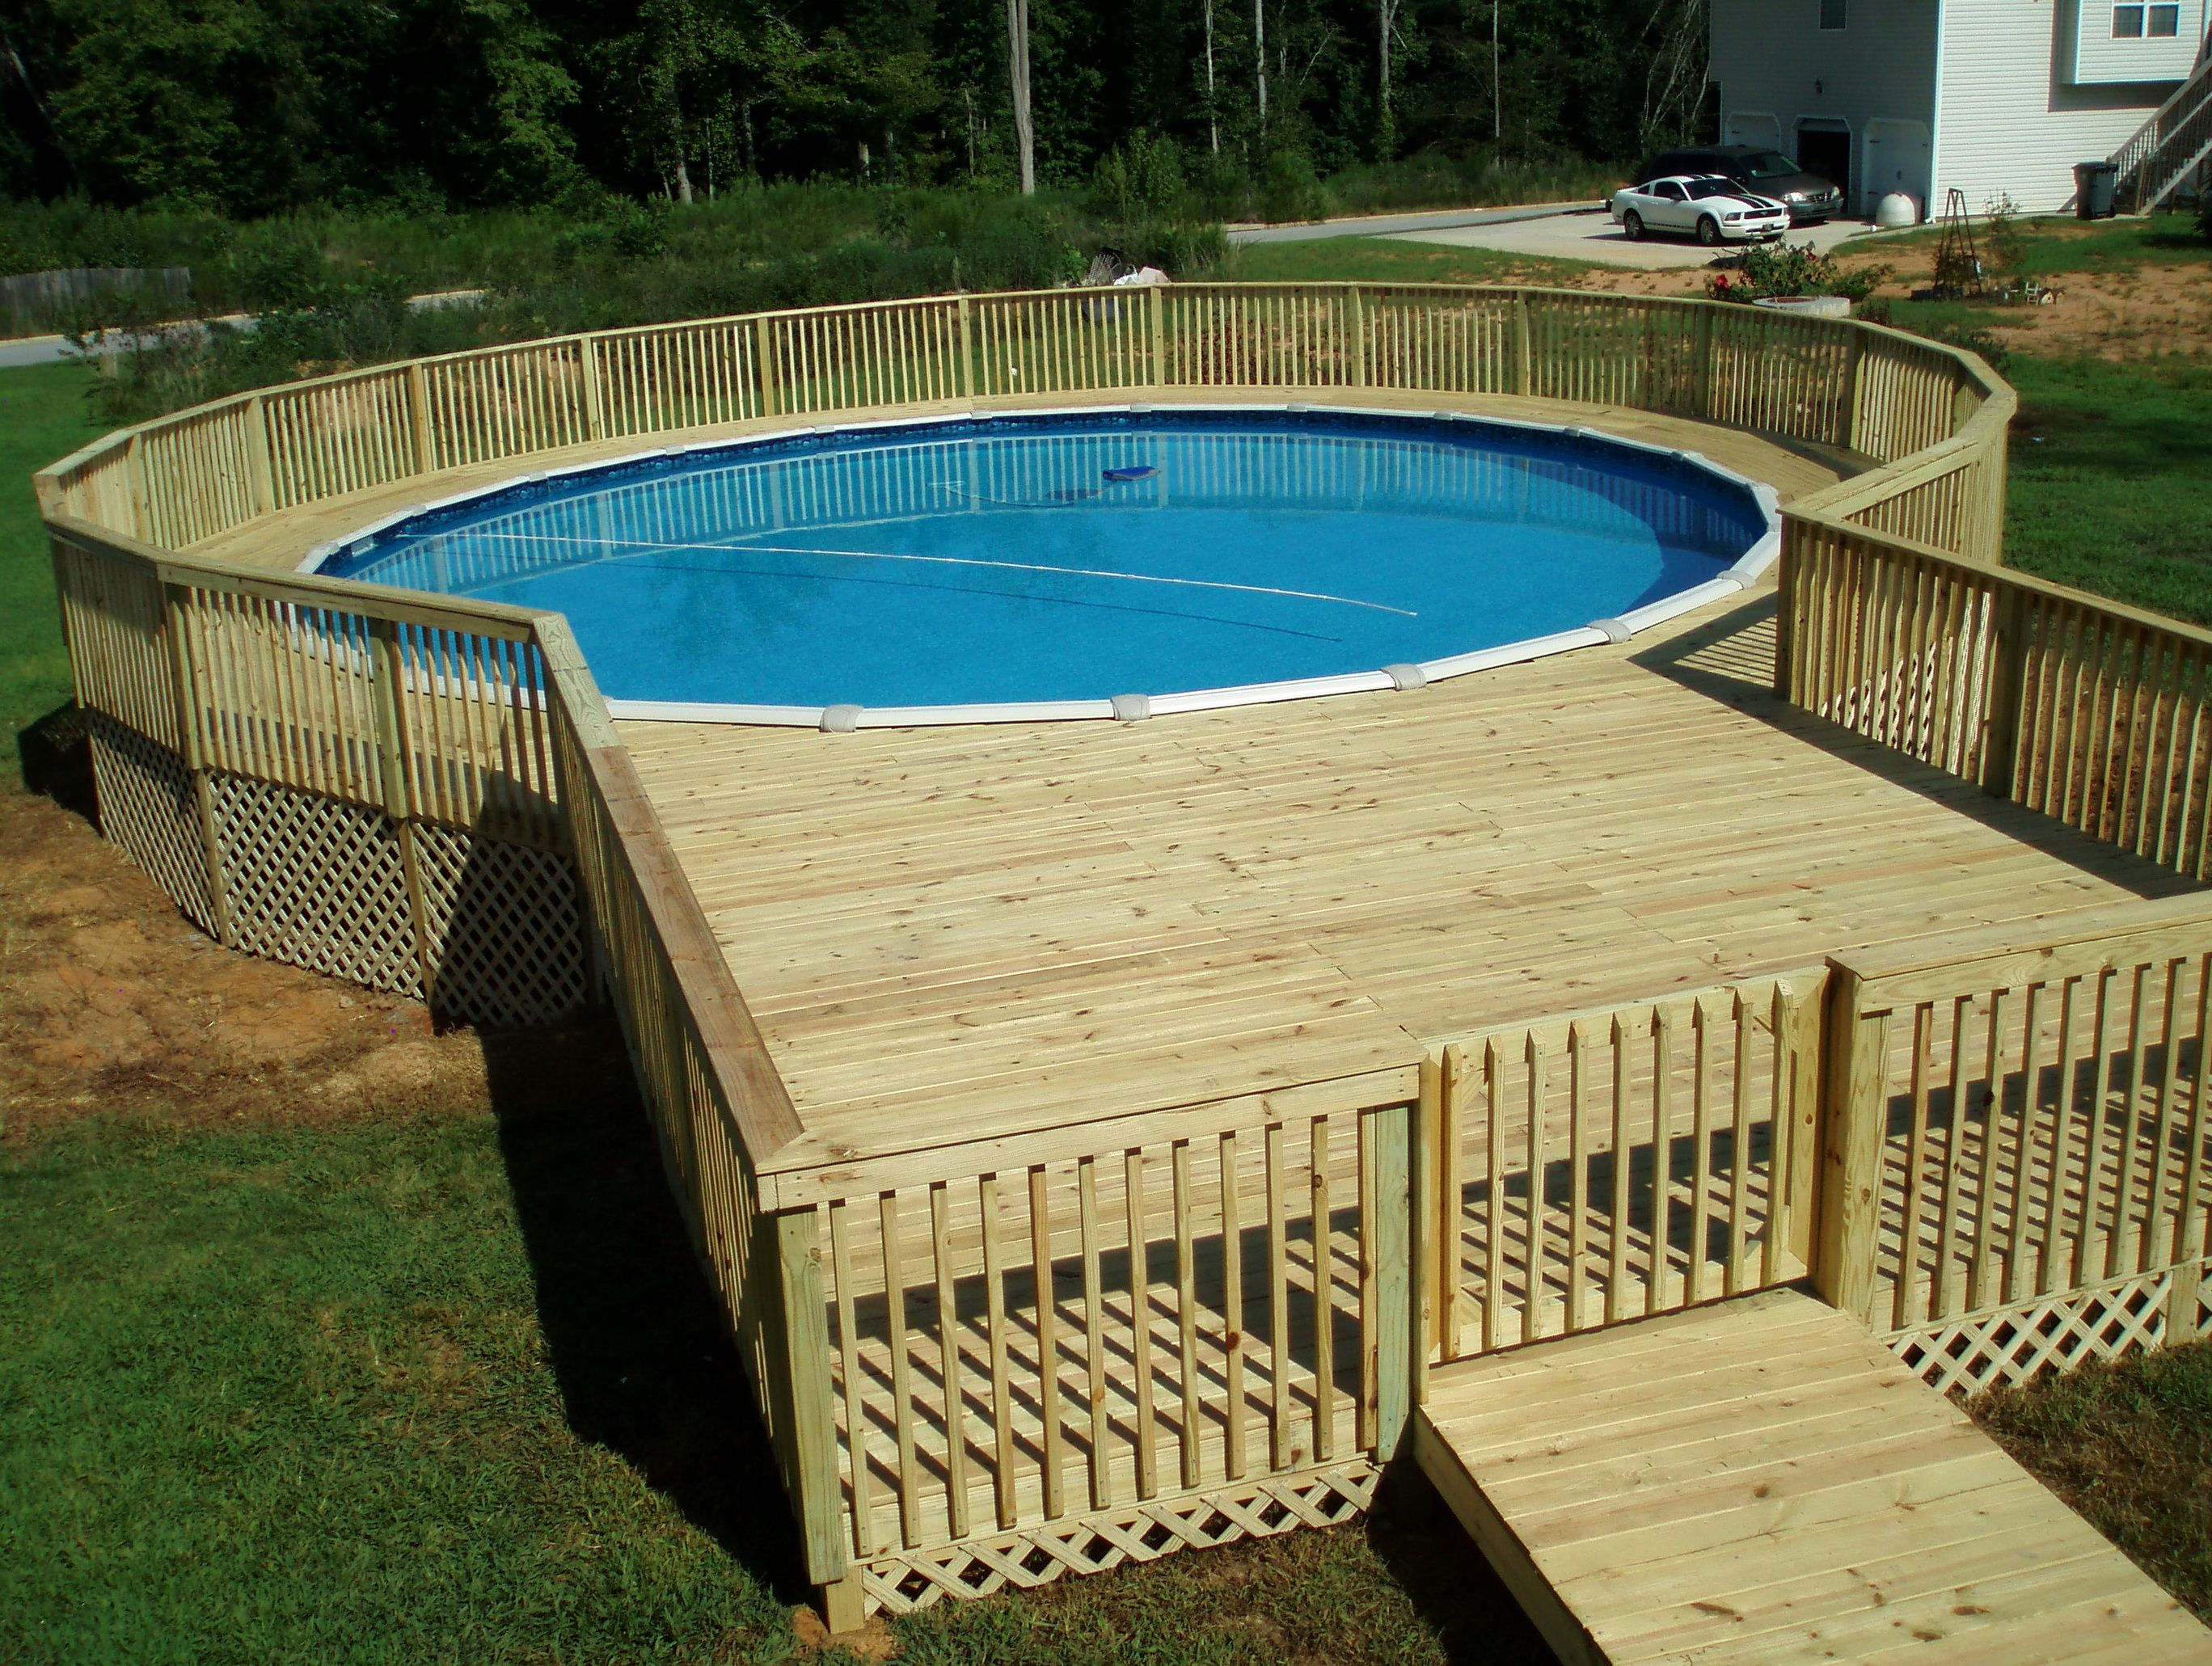 Pool Deck Plans Above Ground Decks Pinterest Home Design Home And Pool Deck Plans